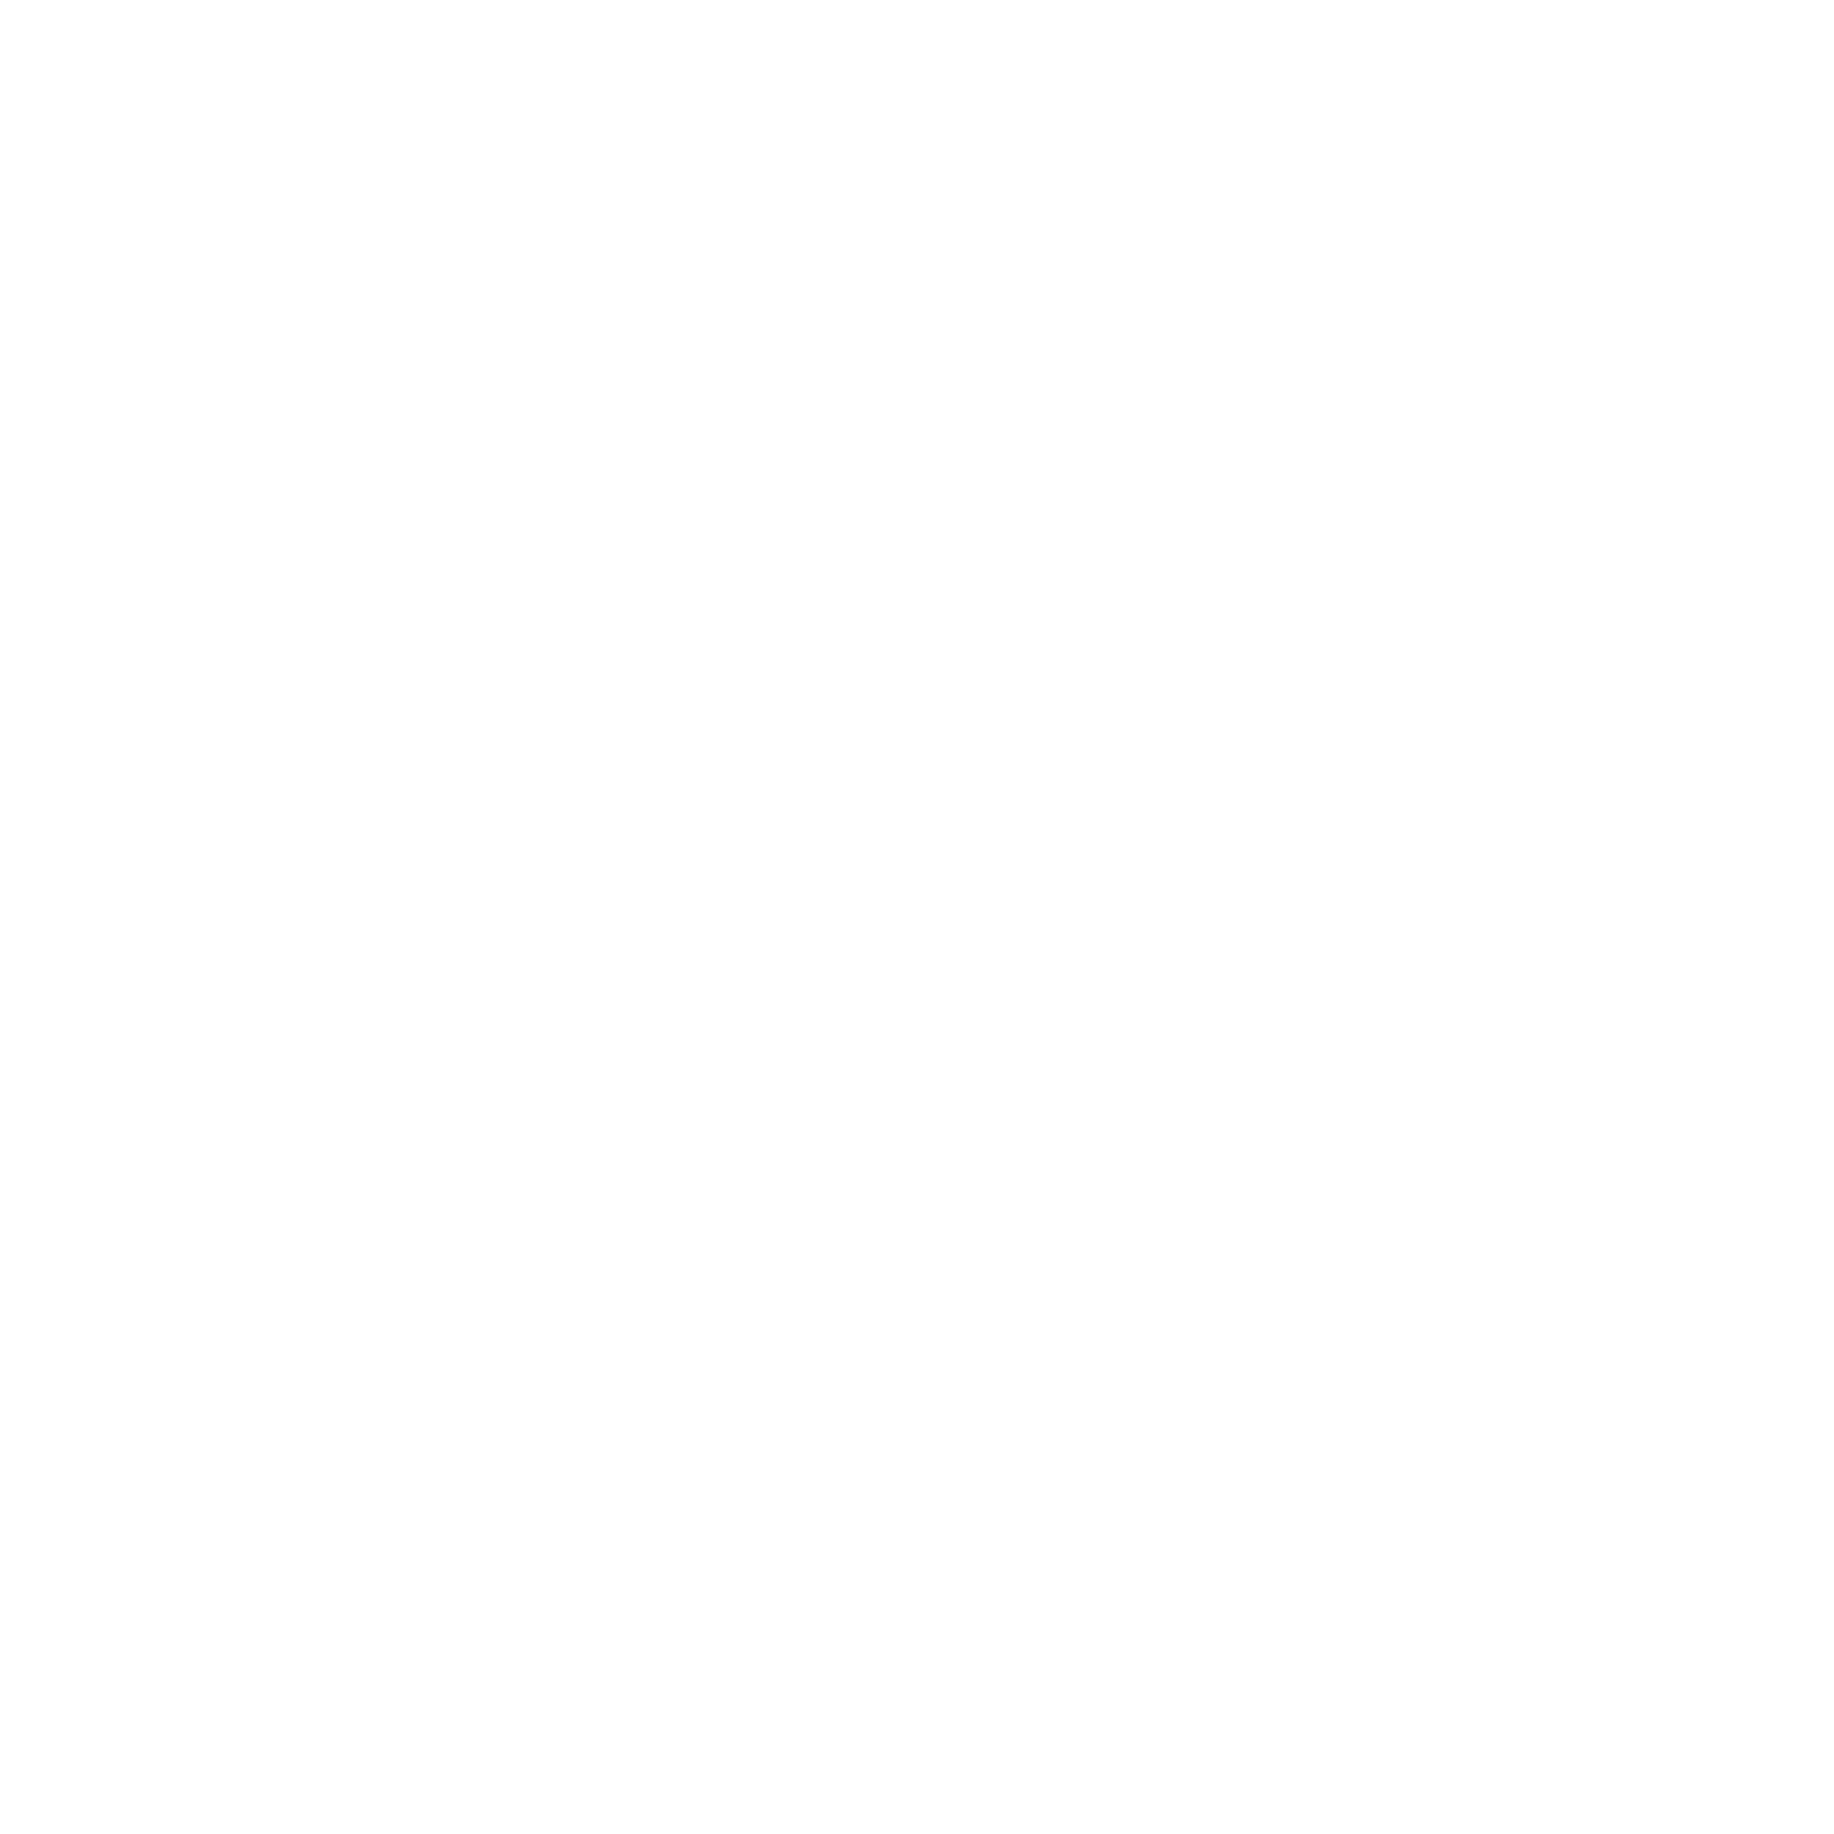 NCQA Prevalidated for Population Health Management